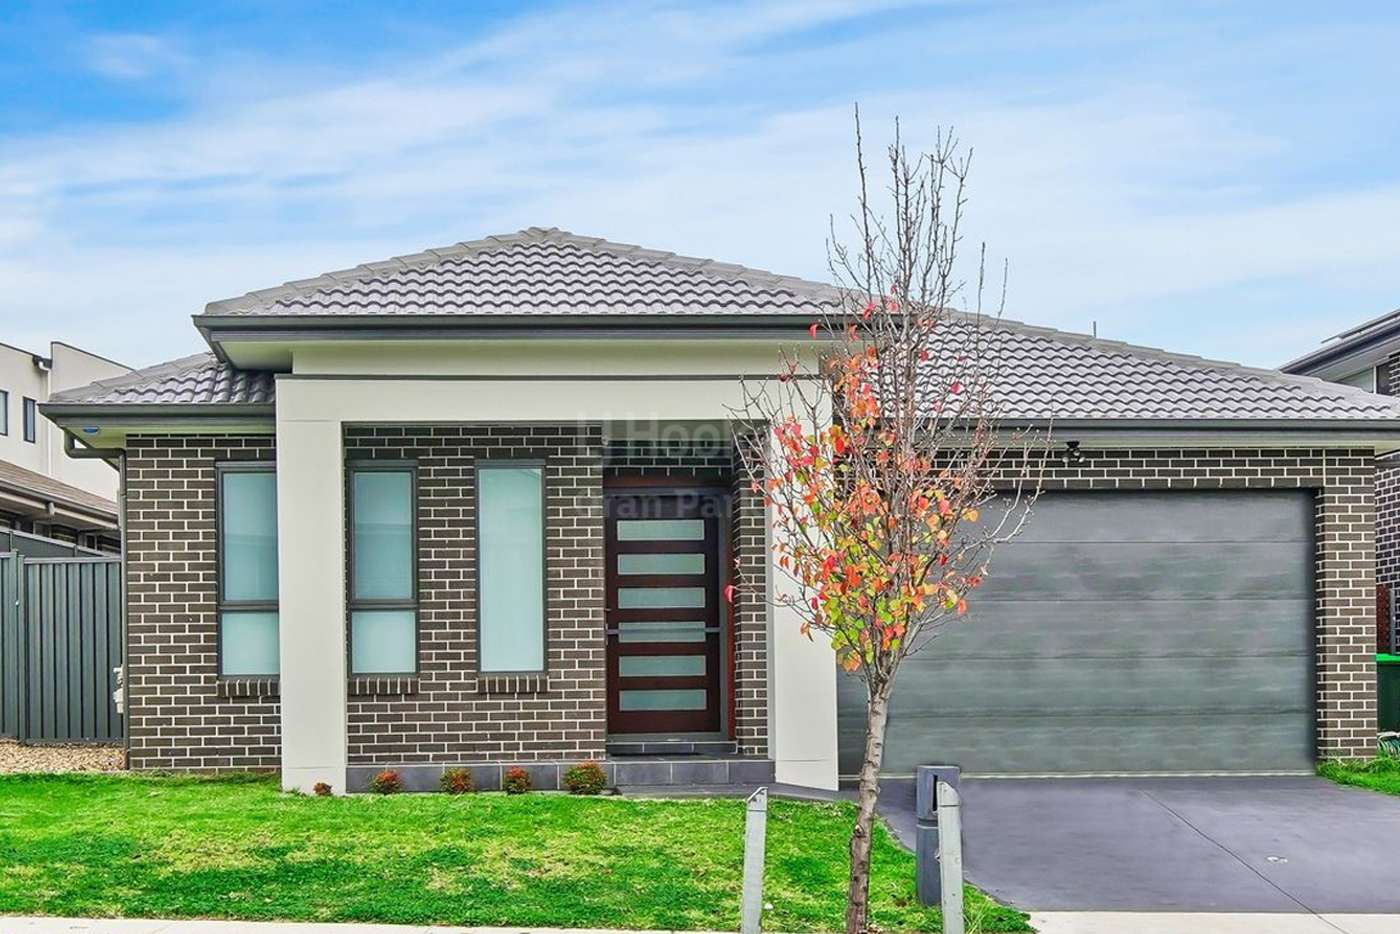 Main view of Homely house listing, 11 Sowerby Street, Oran Park NSW 2570